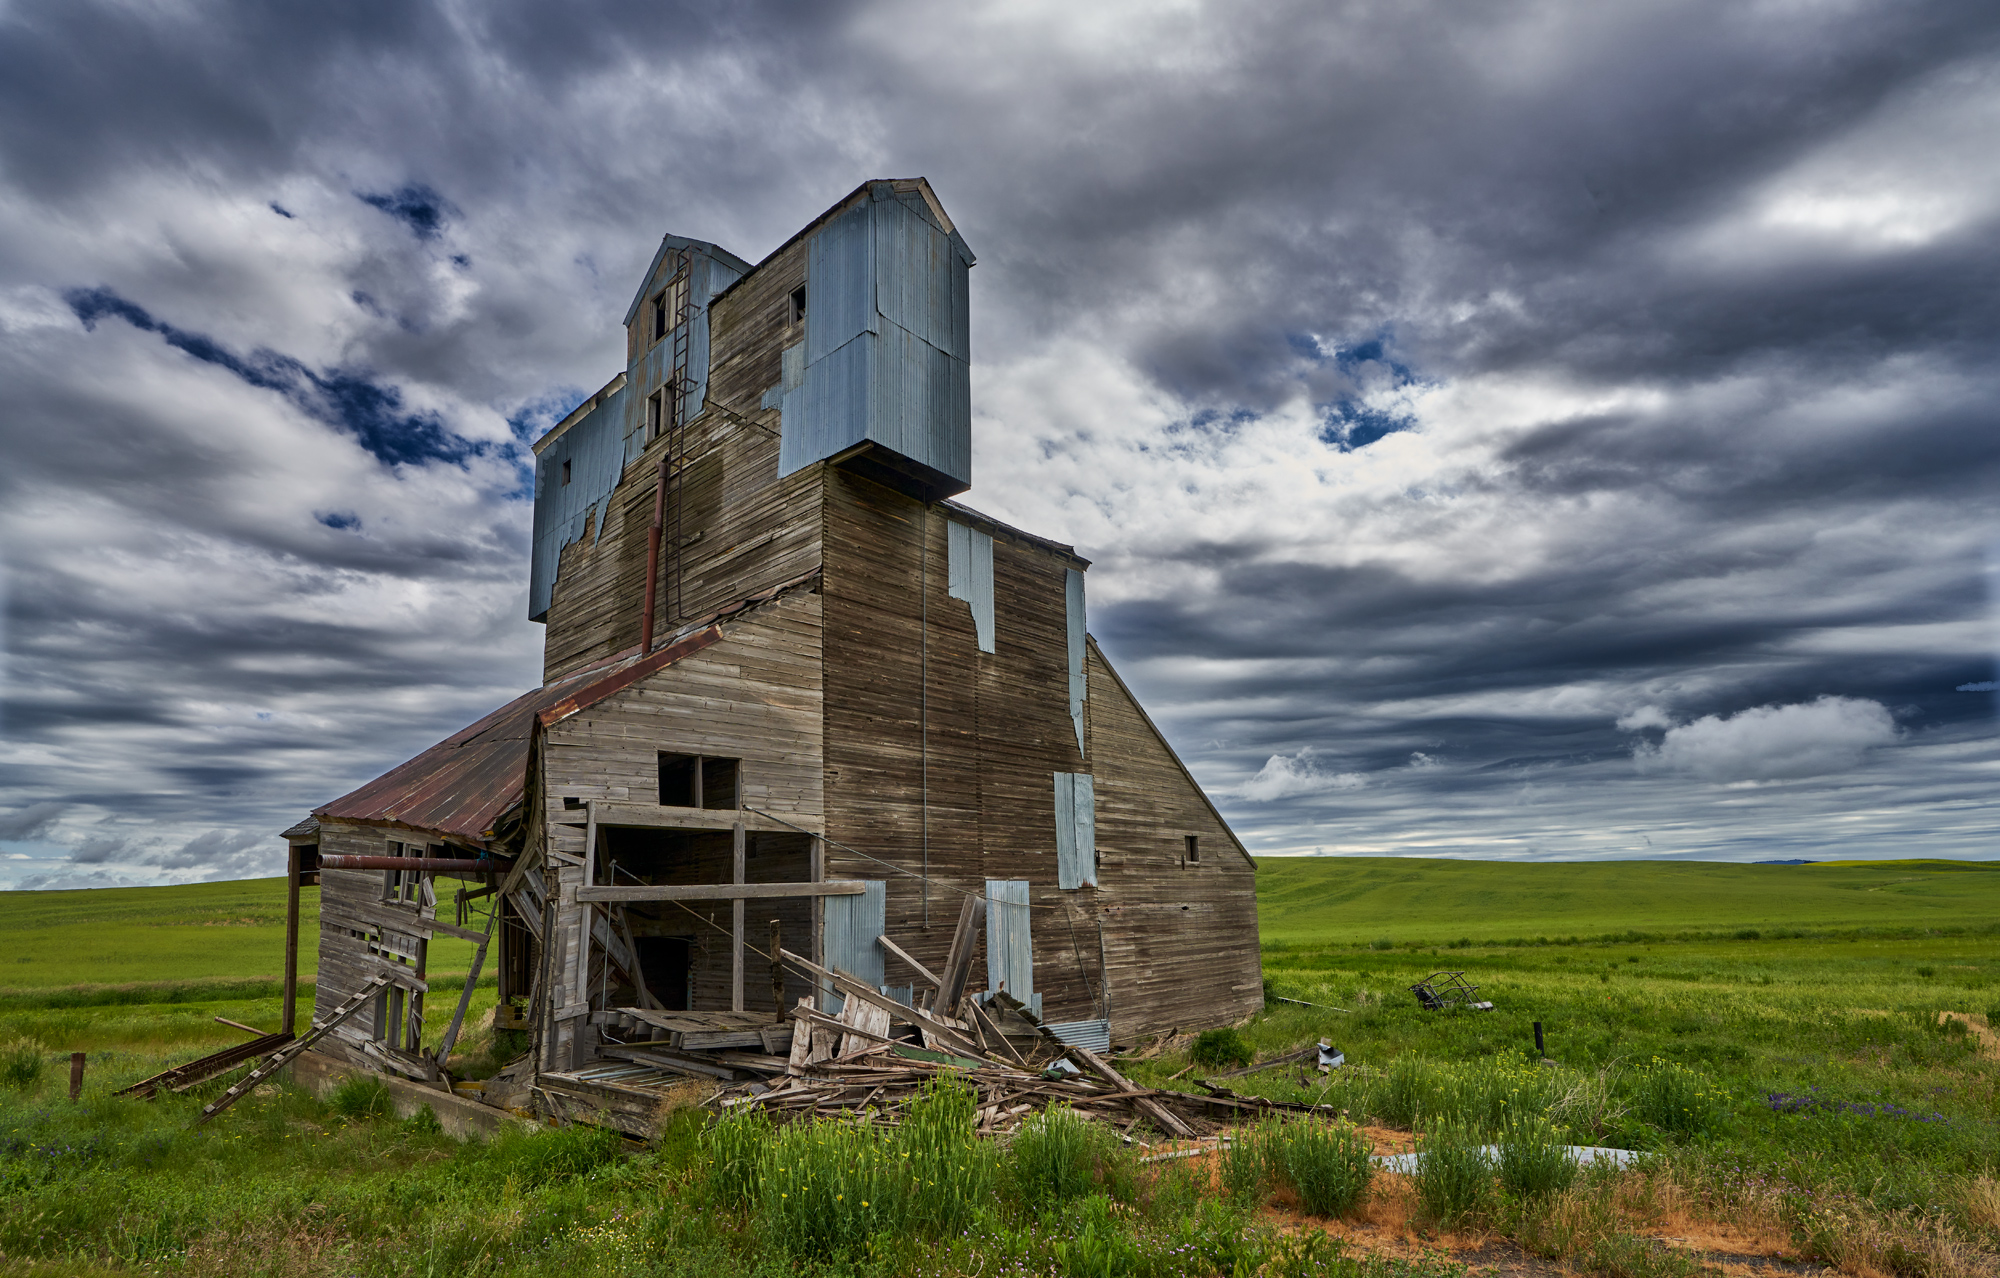 Grain Silo that has been decaying for years